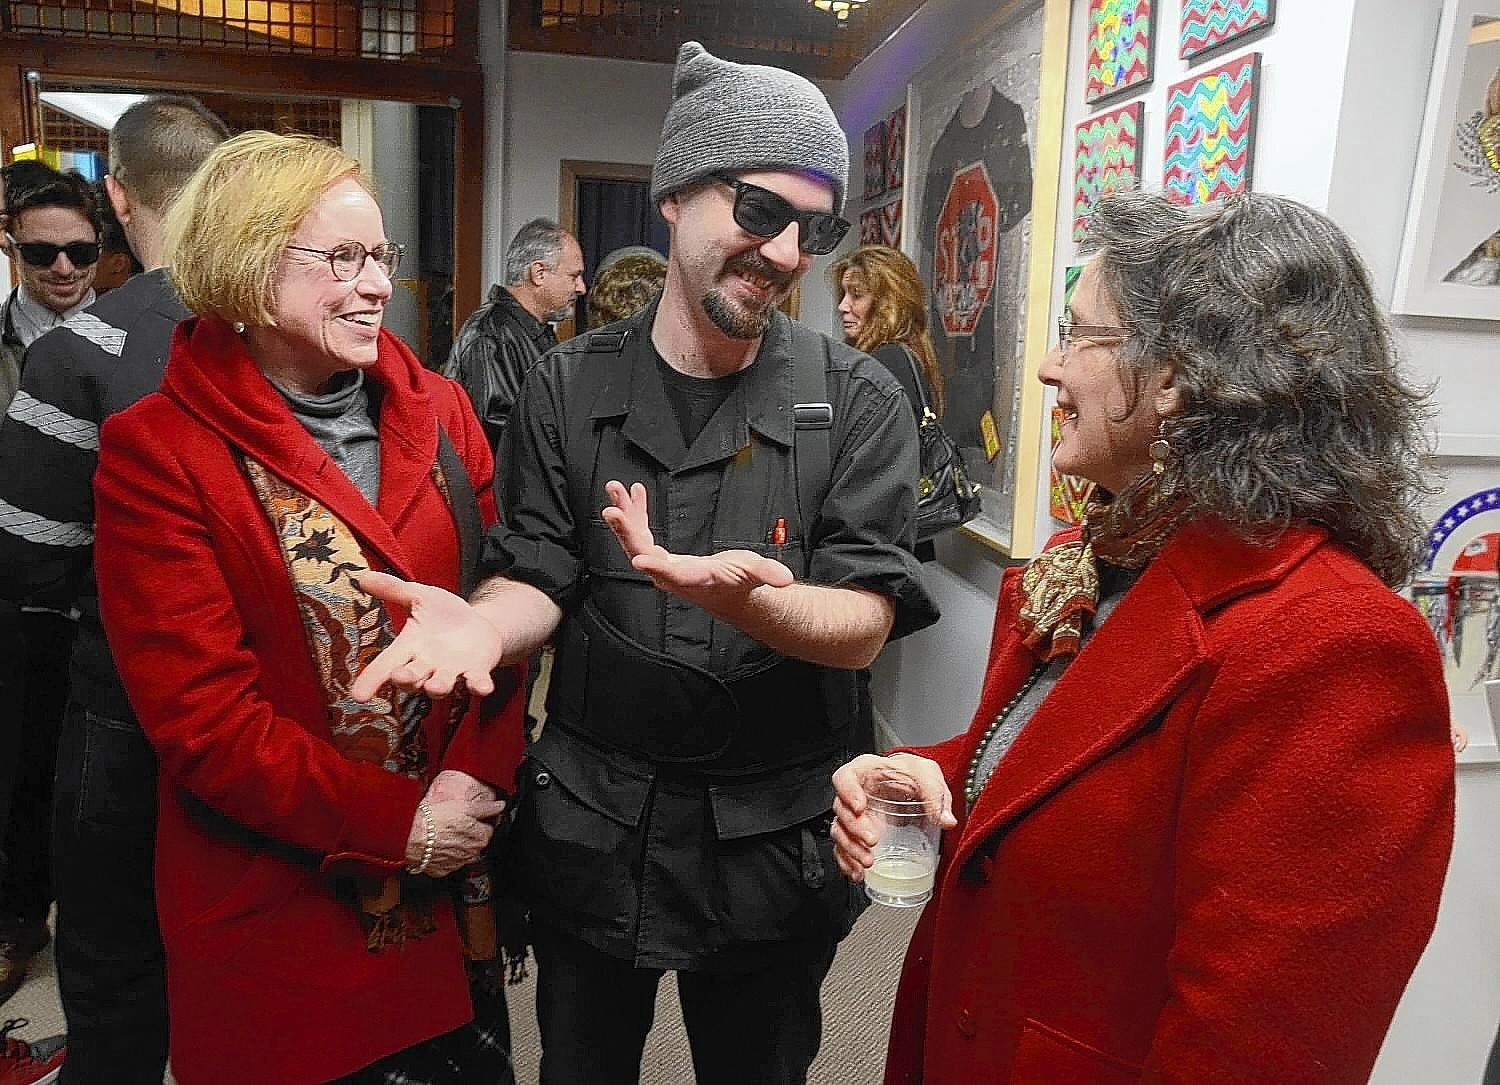 Jacob Pongratz, (center) owner of Pongratz Fine Art shares a moments with Martha Ahlquist (left) and Laura Green (right) during an art show opening reception at Pongratz Fine Art Friday evening. More than dozen artists participate in the show